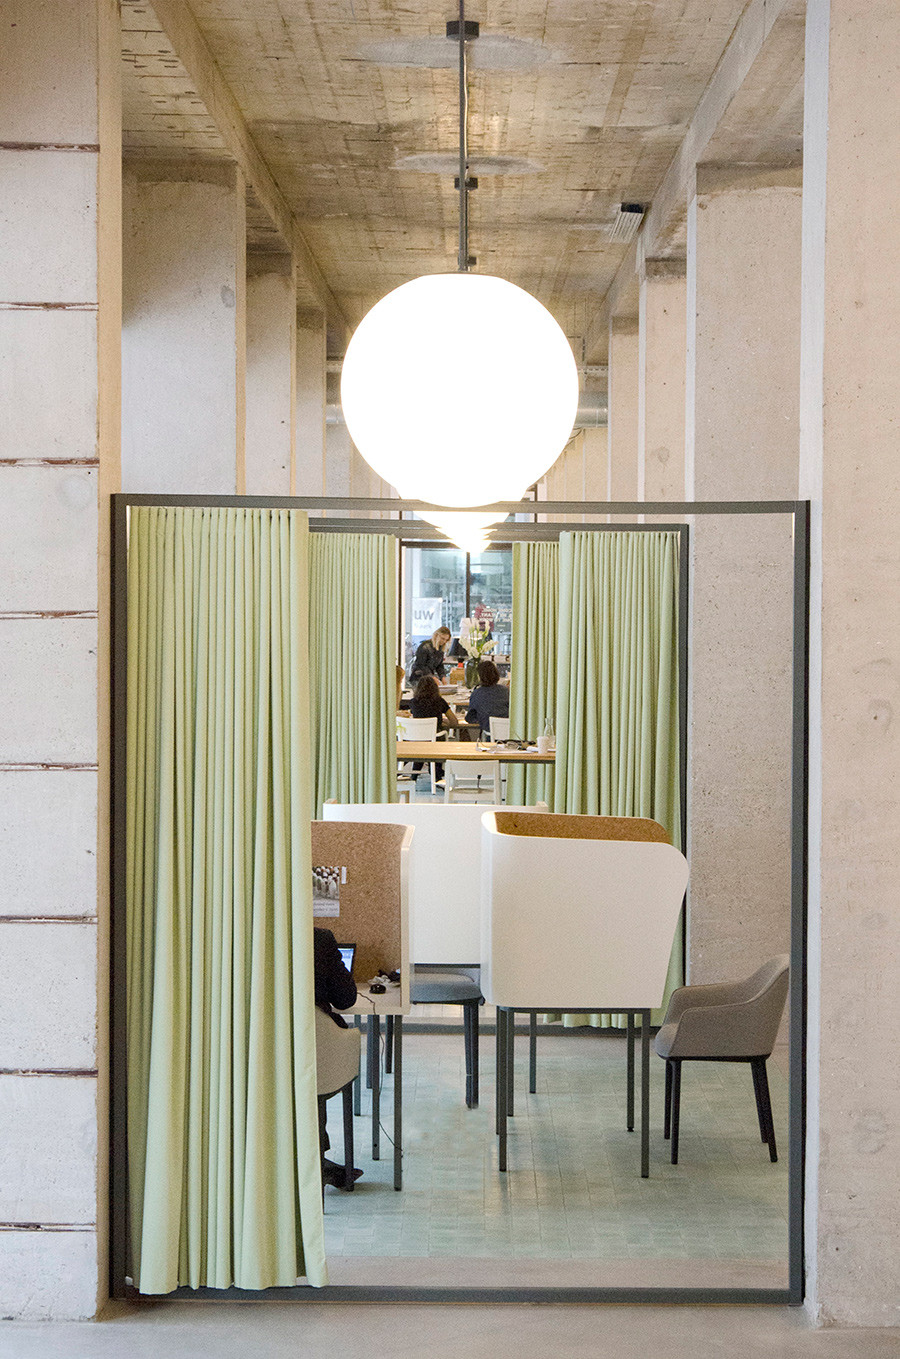 Co-working space by Spaces in Vijzelstraat. Photo by Florence Rozensztajn,